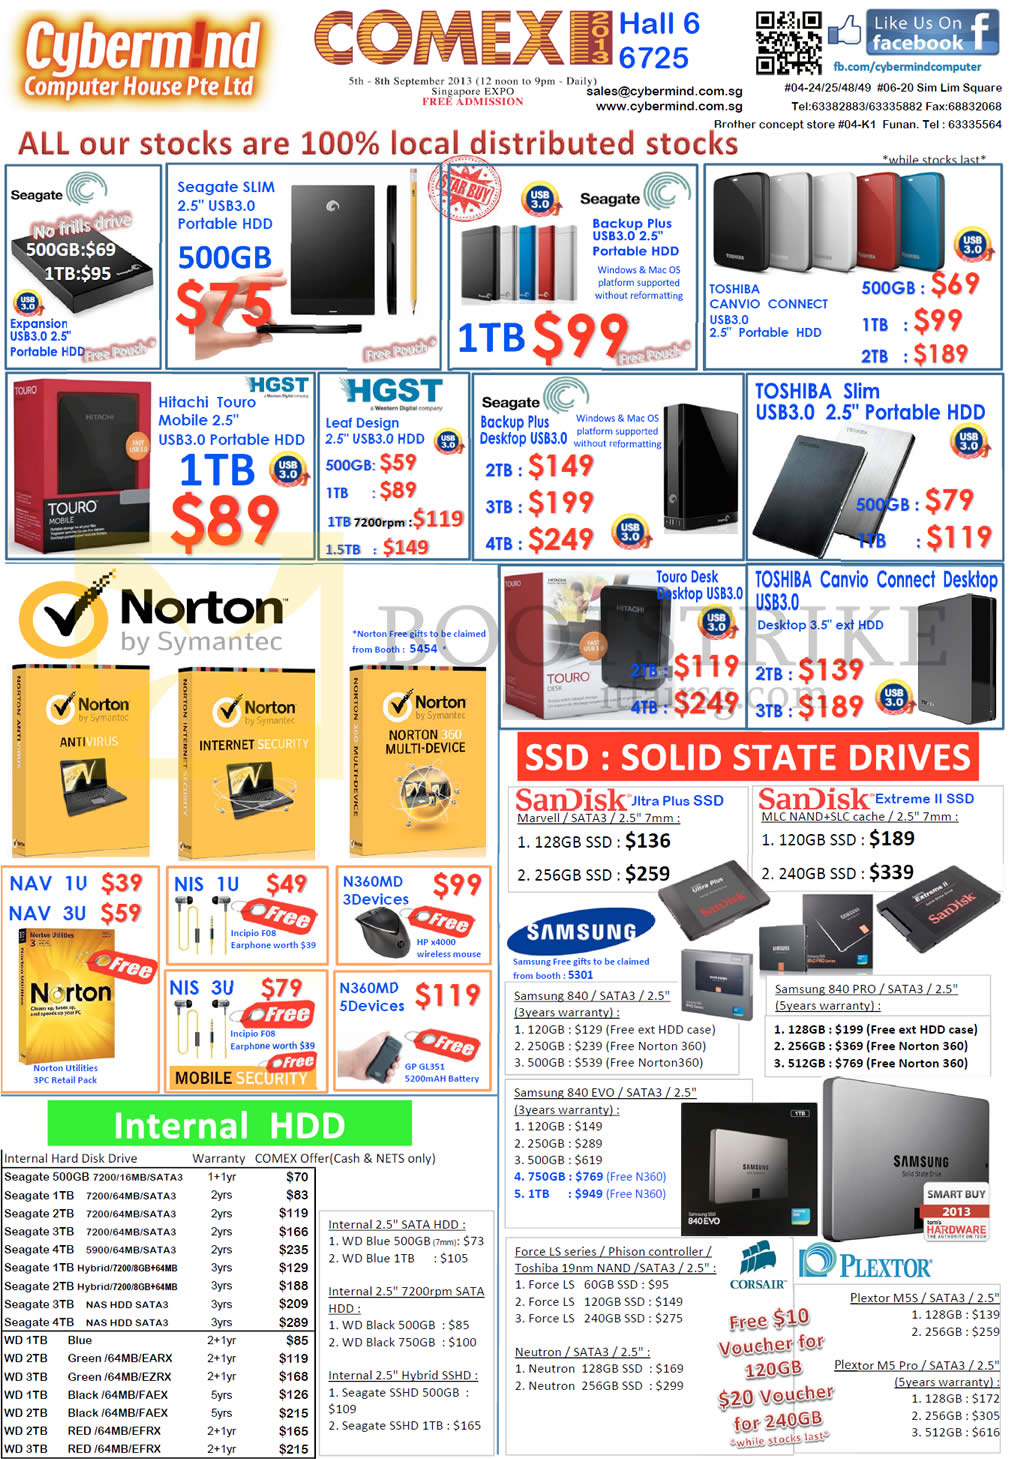 COMEX 2013 price list image brochure of Cybermind External Storage Seagate, HGST Hitachi Touro, Toshiba, SSD, Samsung, 500TB, 1TB, 2TB, 3TB, 4TB, Backup Plus, Canvio Connect, Plextor, Sandisk